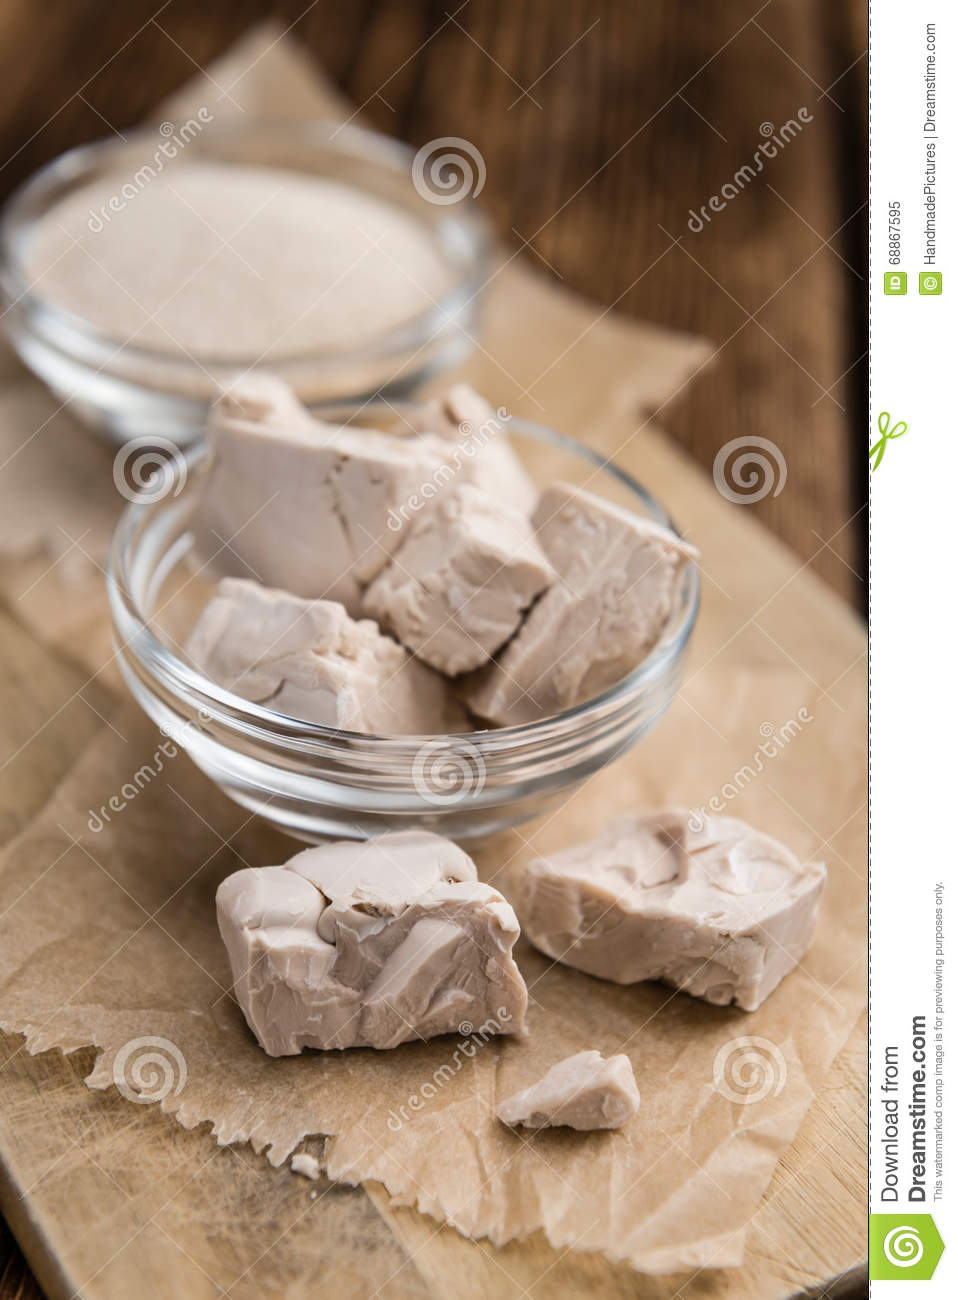 Portion of Yeast (fresh and dried)